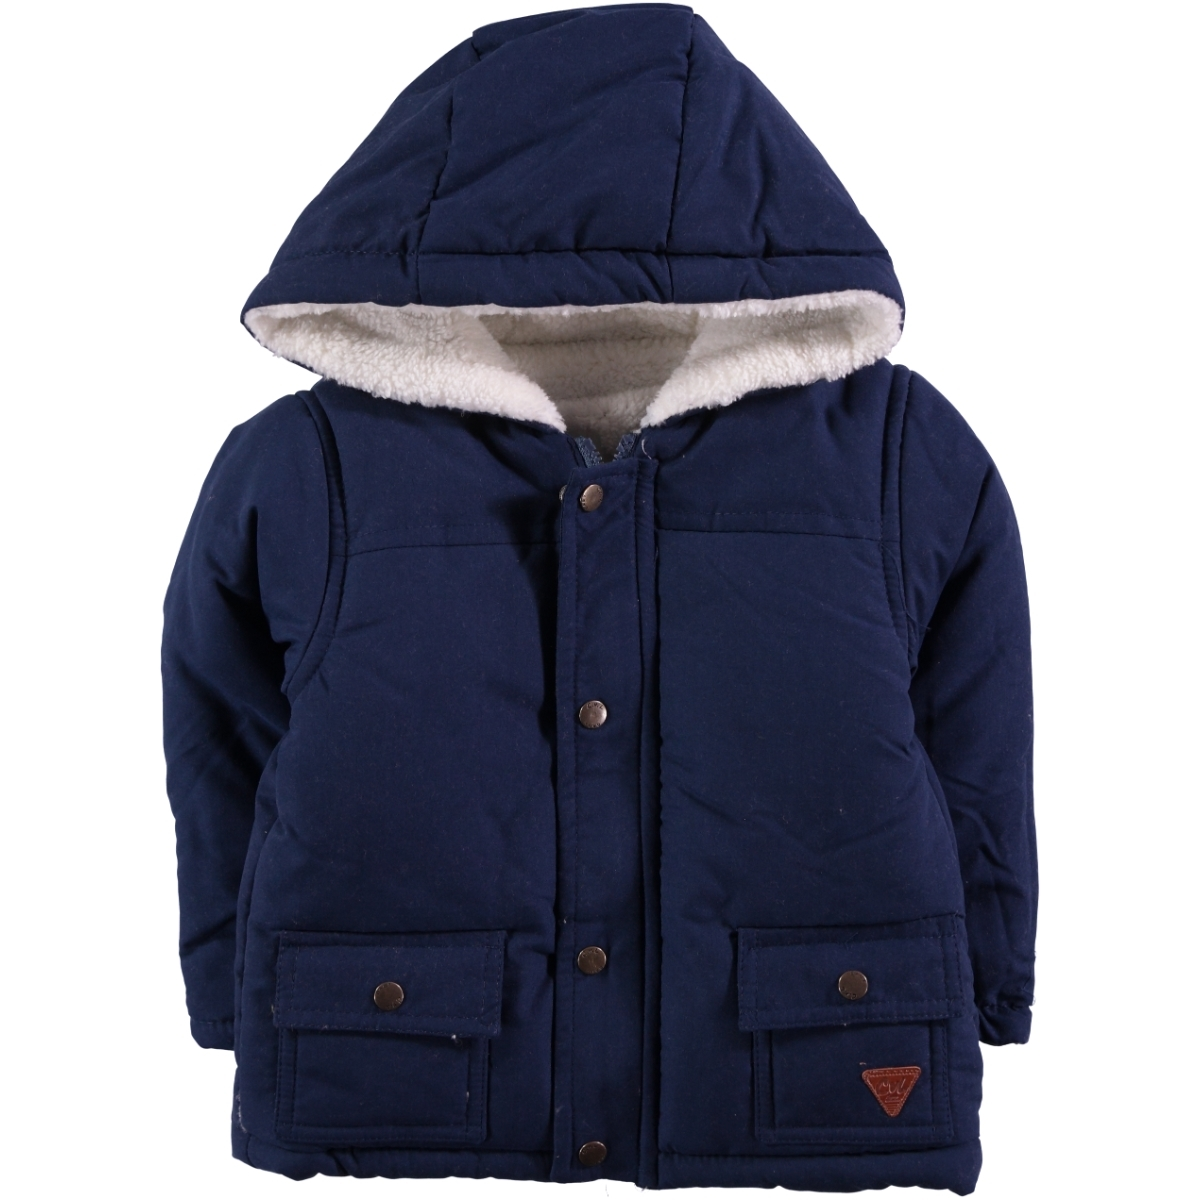 Civil Baby Chirping Baby 9-18 Months Baby Boy Navy Blue Jacket